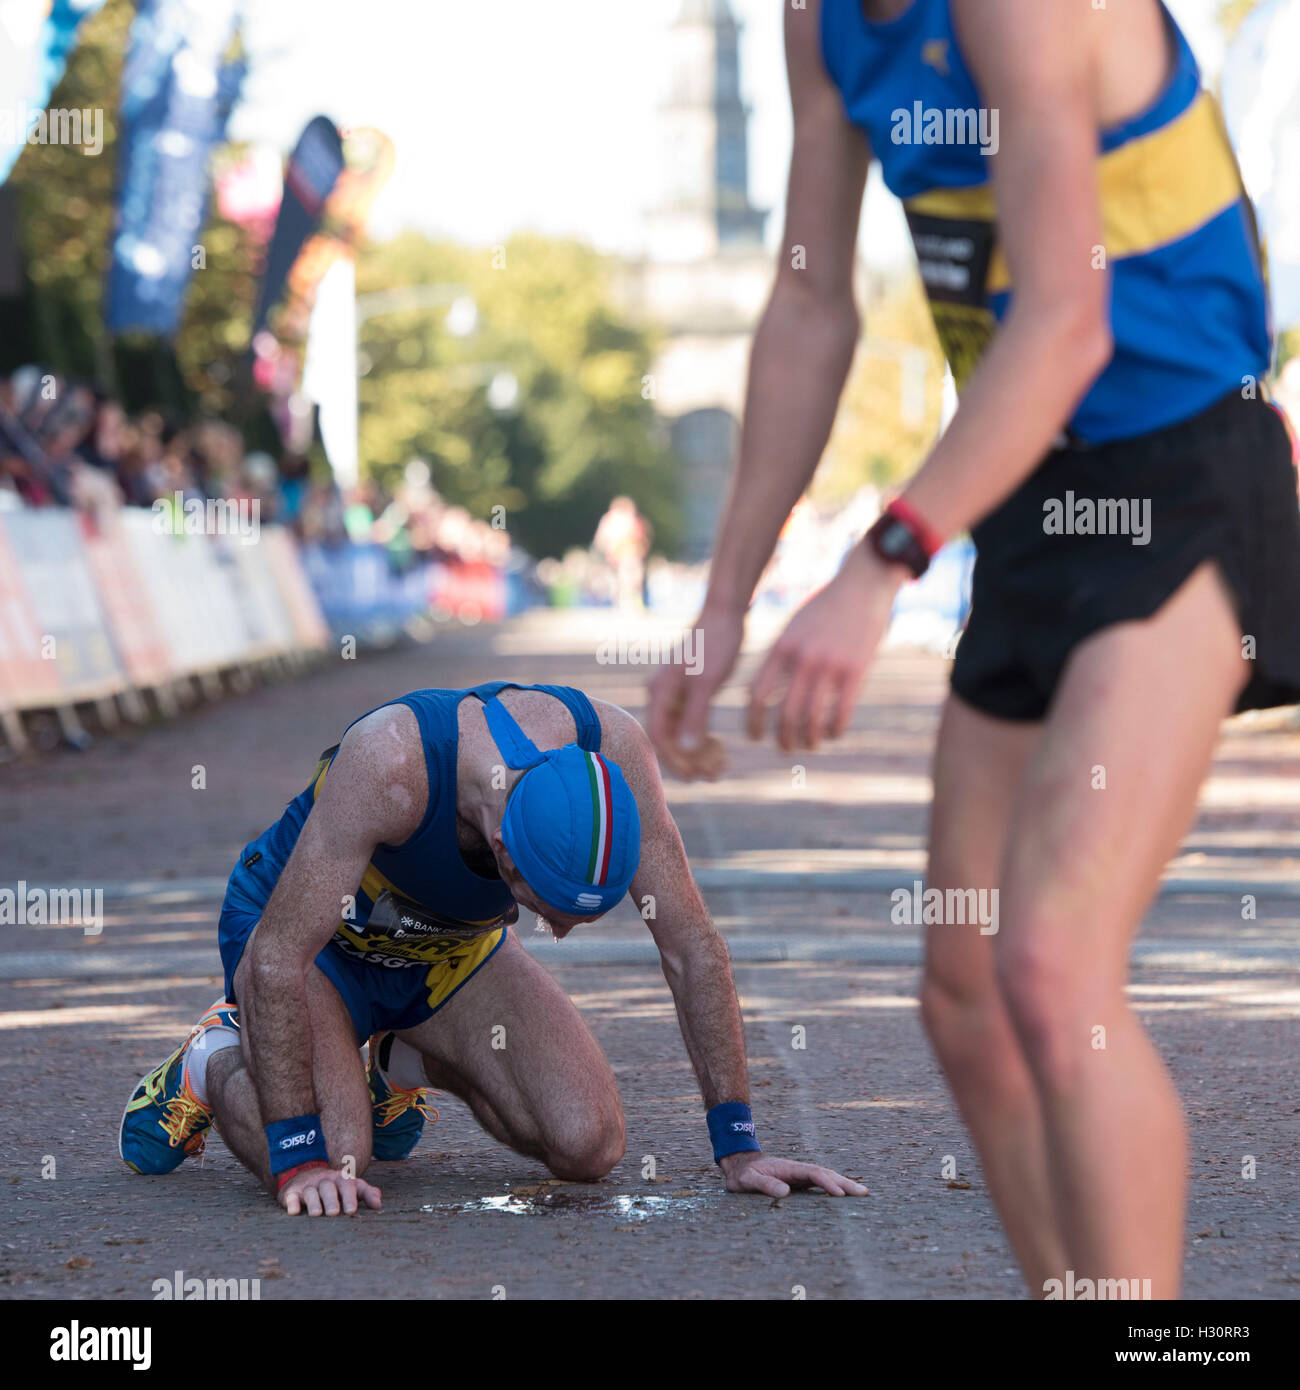 Runners at the finish line of the Elite Half Marathon race at the Great Scottish Run in Glasgow. - Stock Image